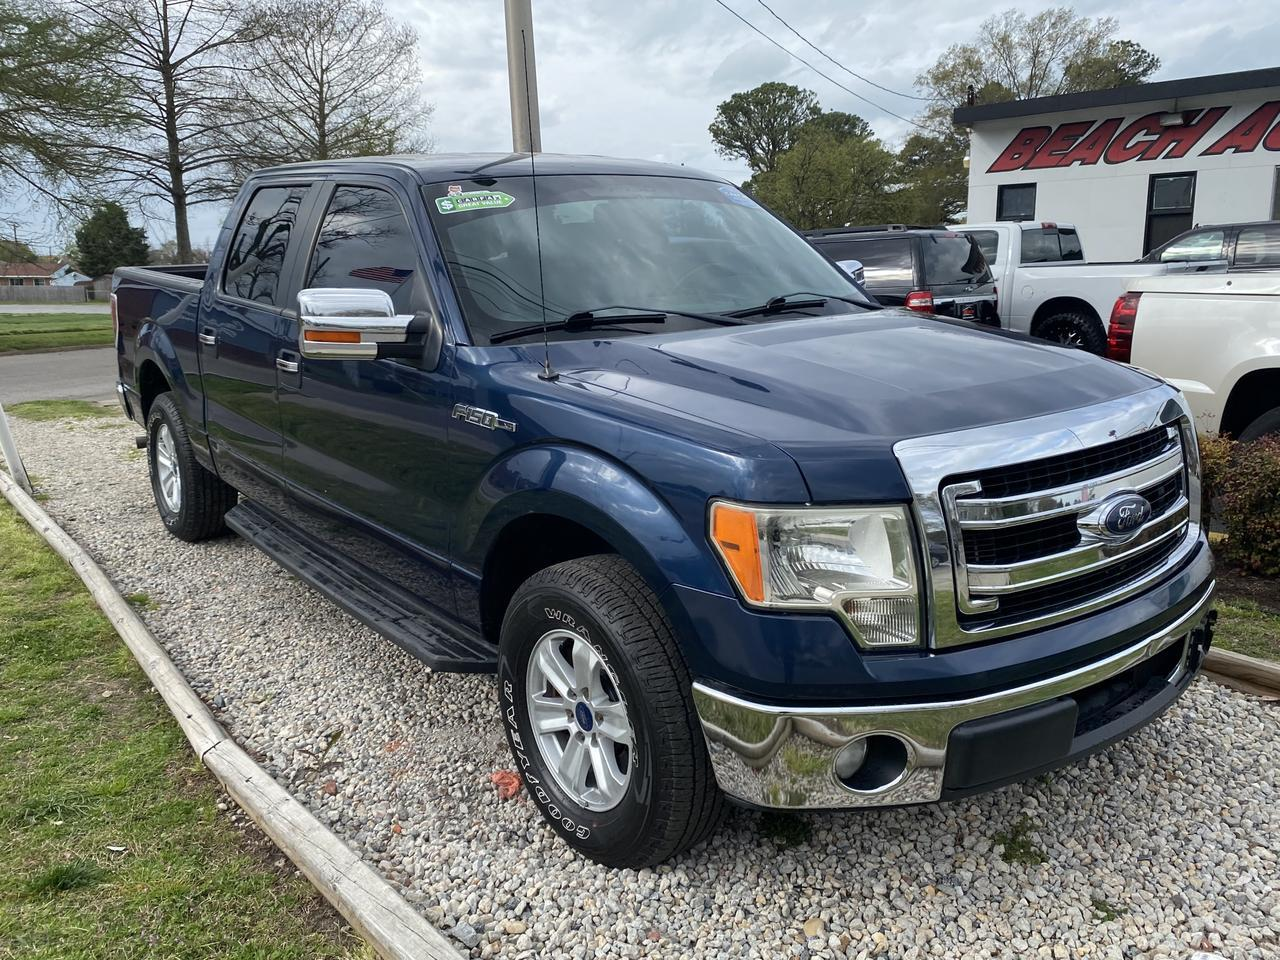 2013 FORD F-150 XLT SUPERCREW, WARRANTY, BLUETOOTH, PARKING SENSORS, AUX/USB PORT, RUNNING BOARDS, A/C! Norfolk VA